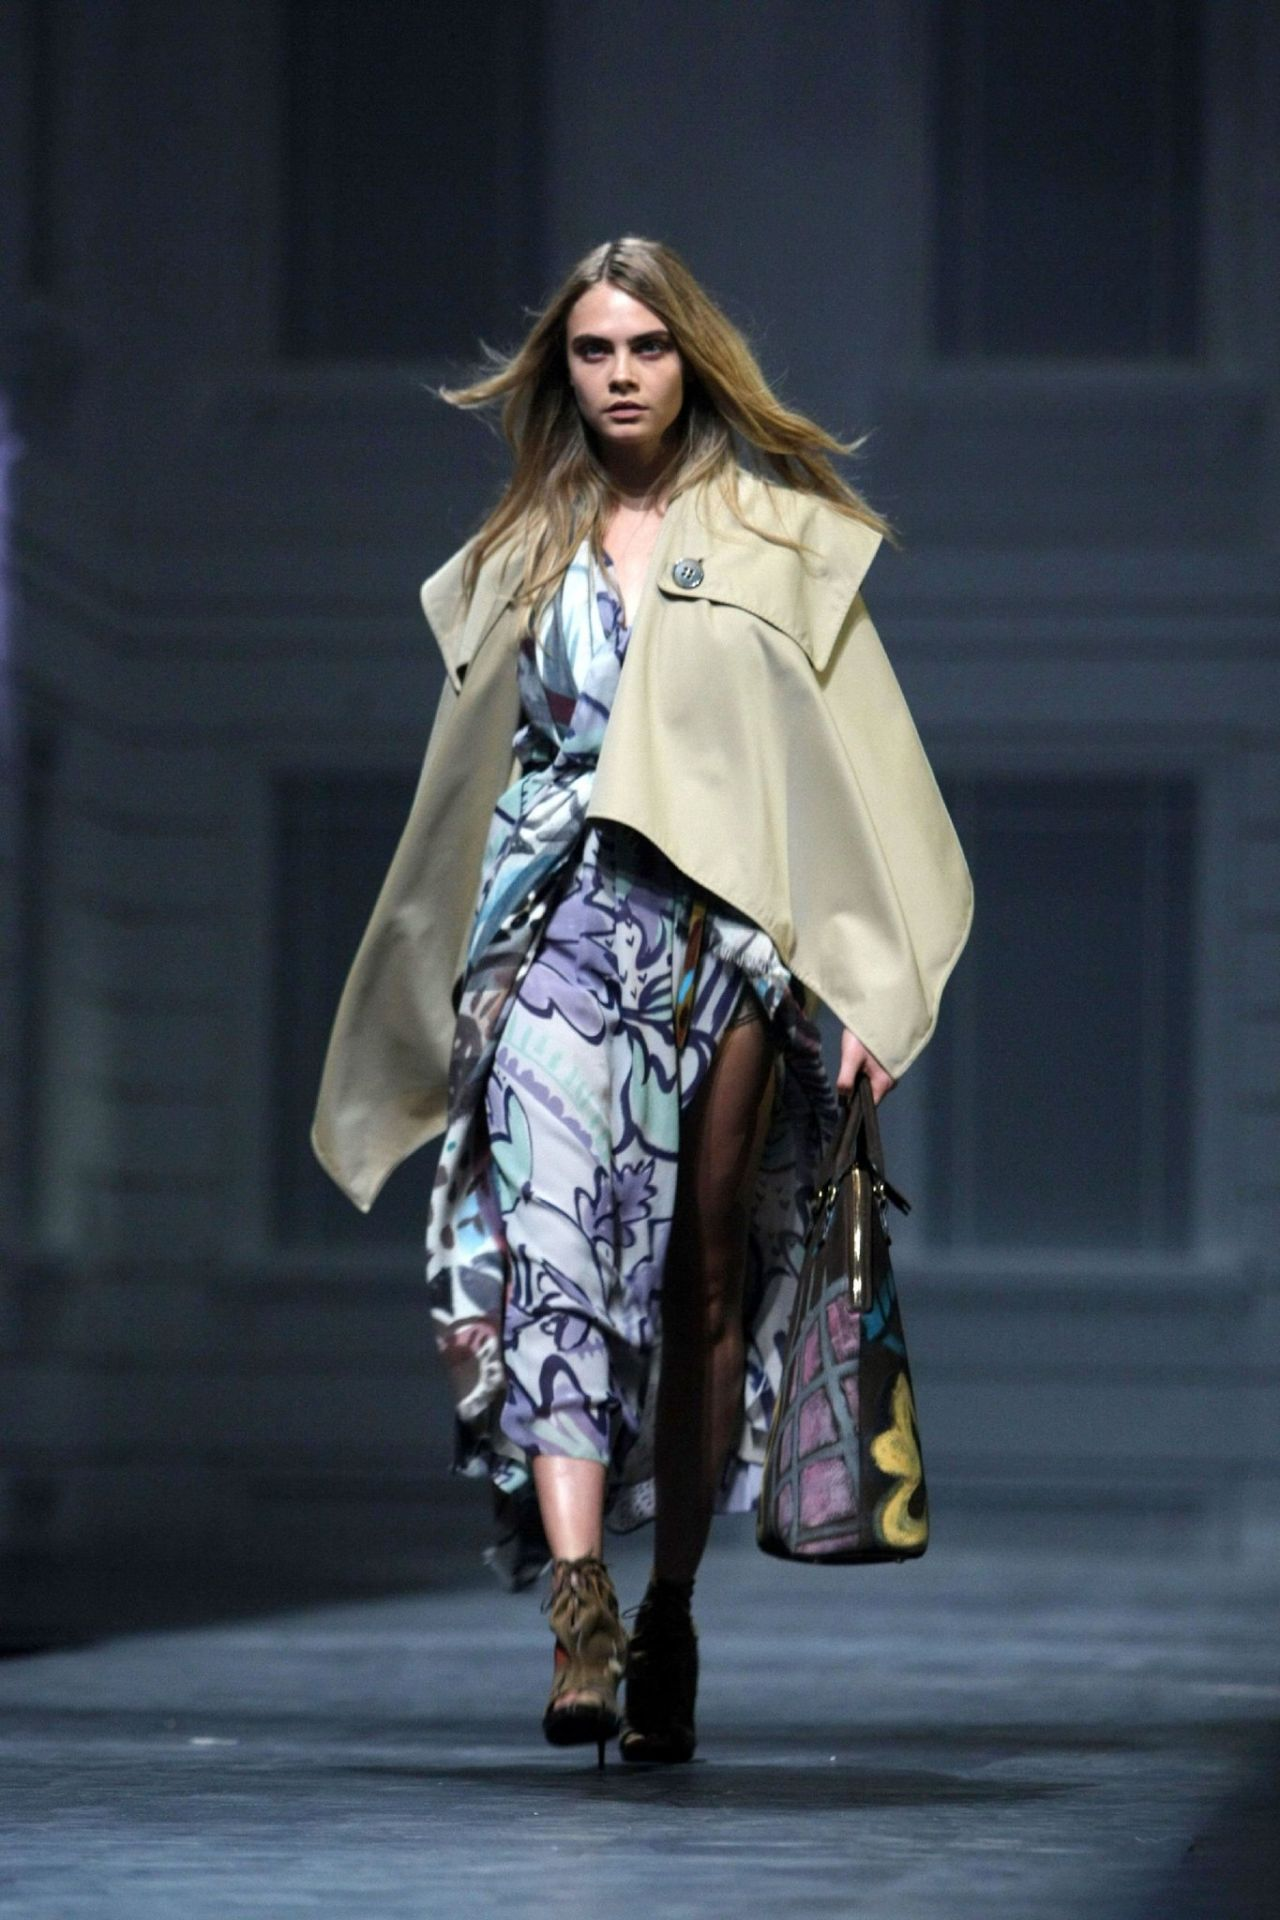 Burberry Väska 2014 : Cara delevingne at burberry shanghai event april